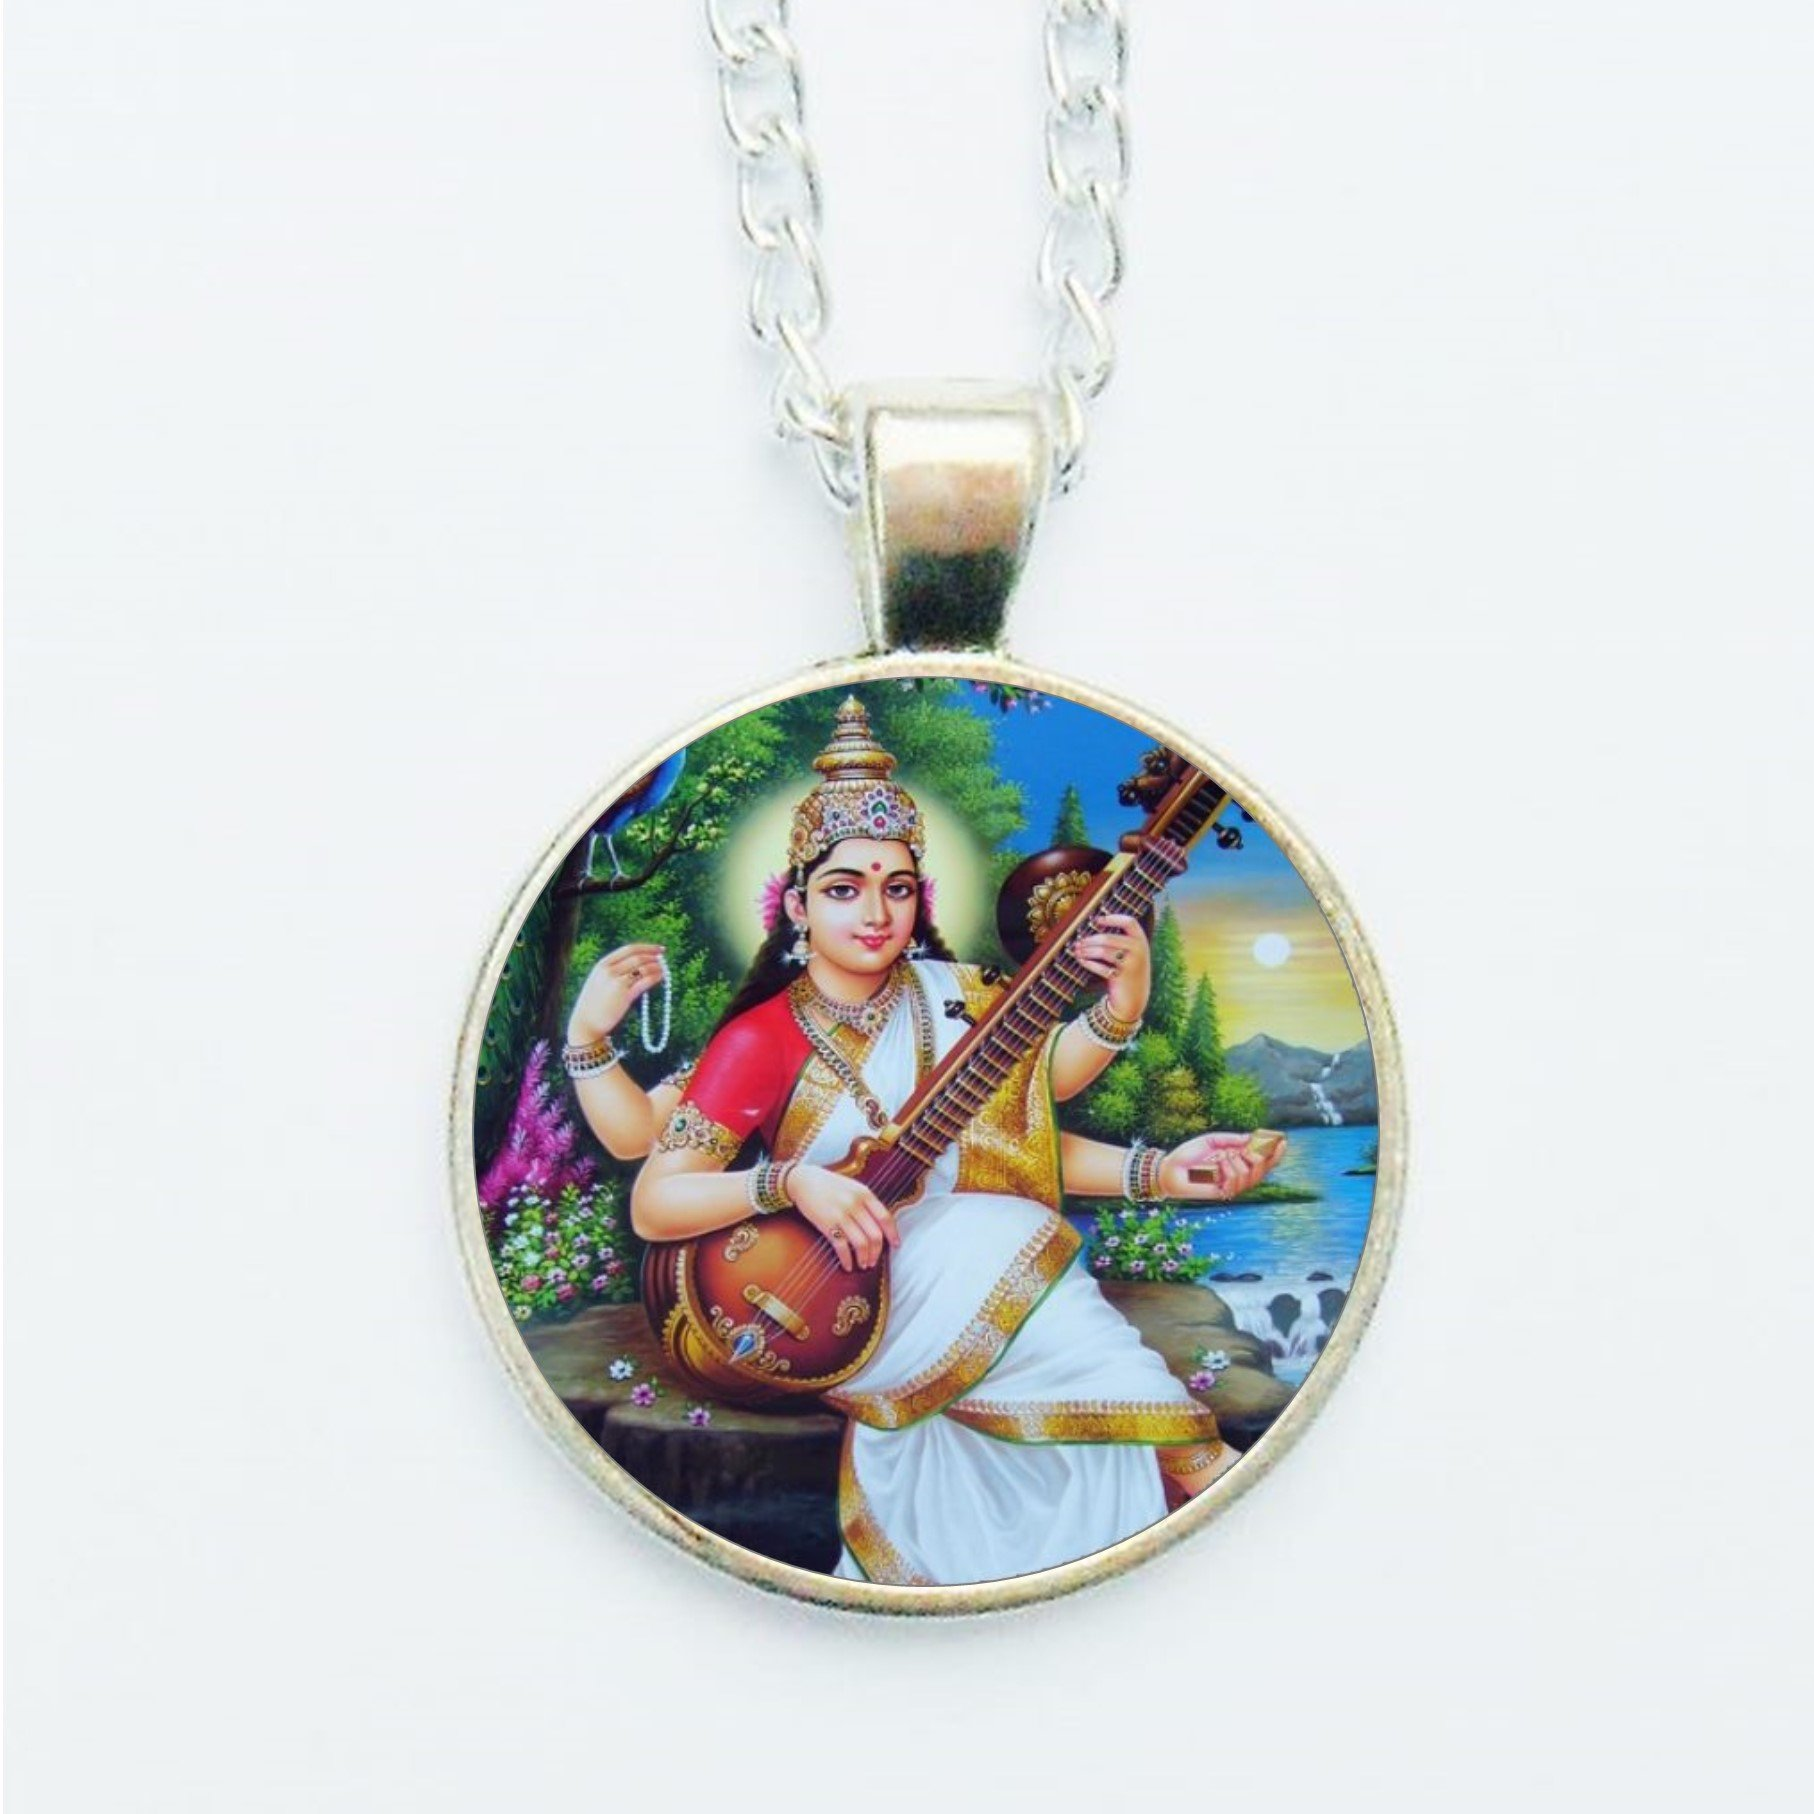 Saraswati Pendant Necklace or Earrings Spiritual Hindu God Goddess Deity Indian New Age Jewelry Music Arts Lover Gift